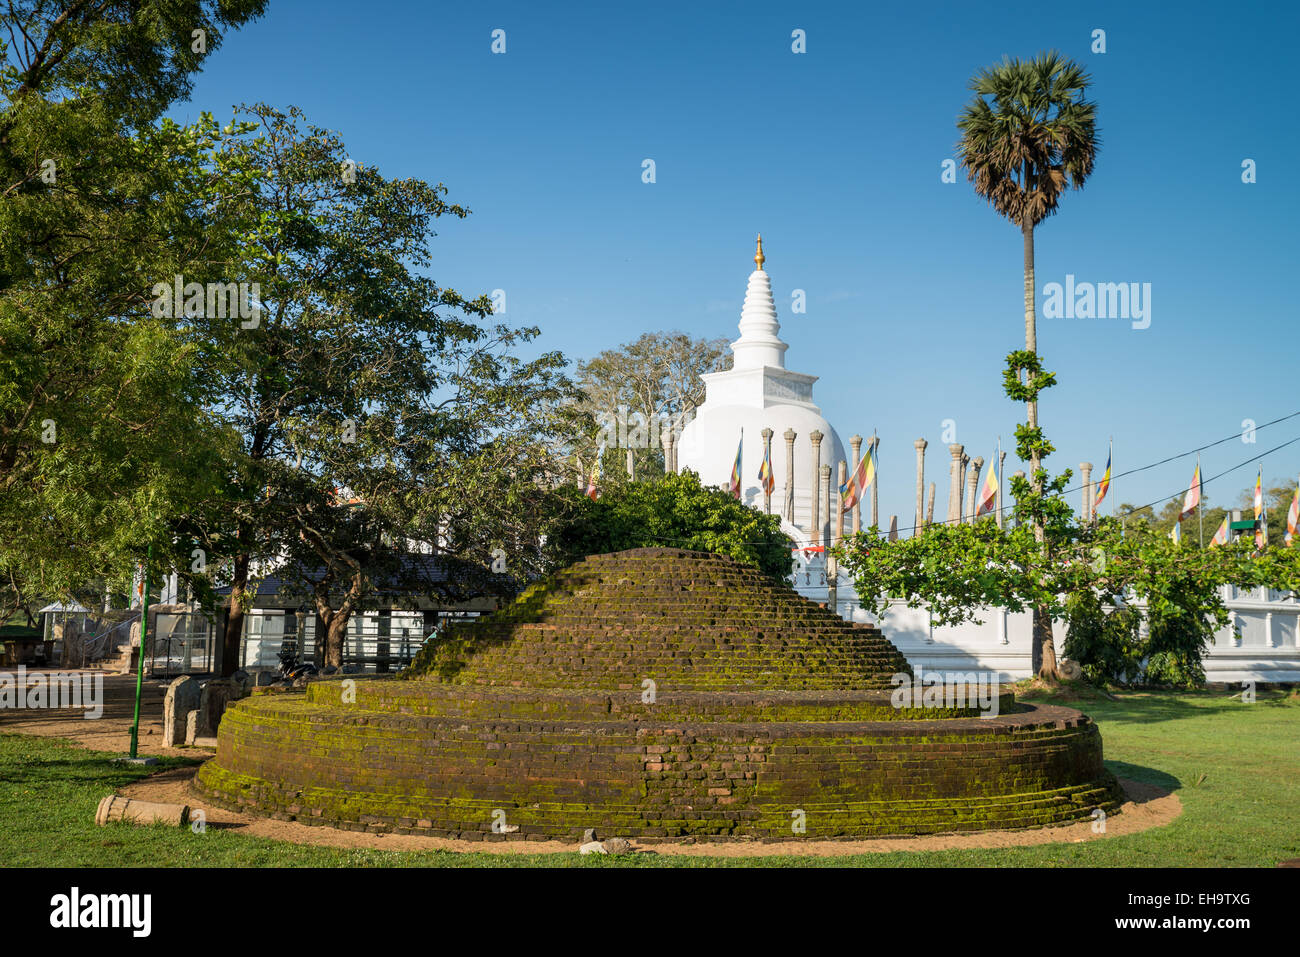 Thuparama Dagoba, Anuradhapura, UNESCO World Heritage Site, North Central Province, Sri Lanka, Asia Stock Photo